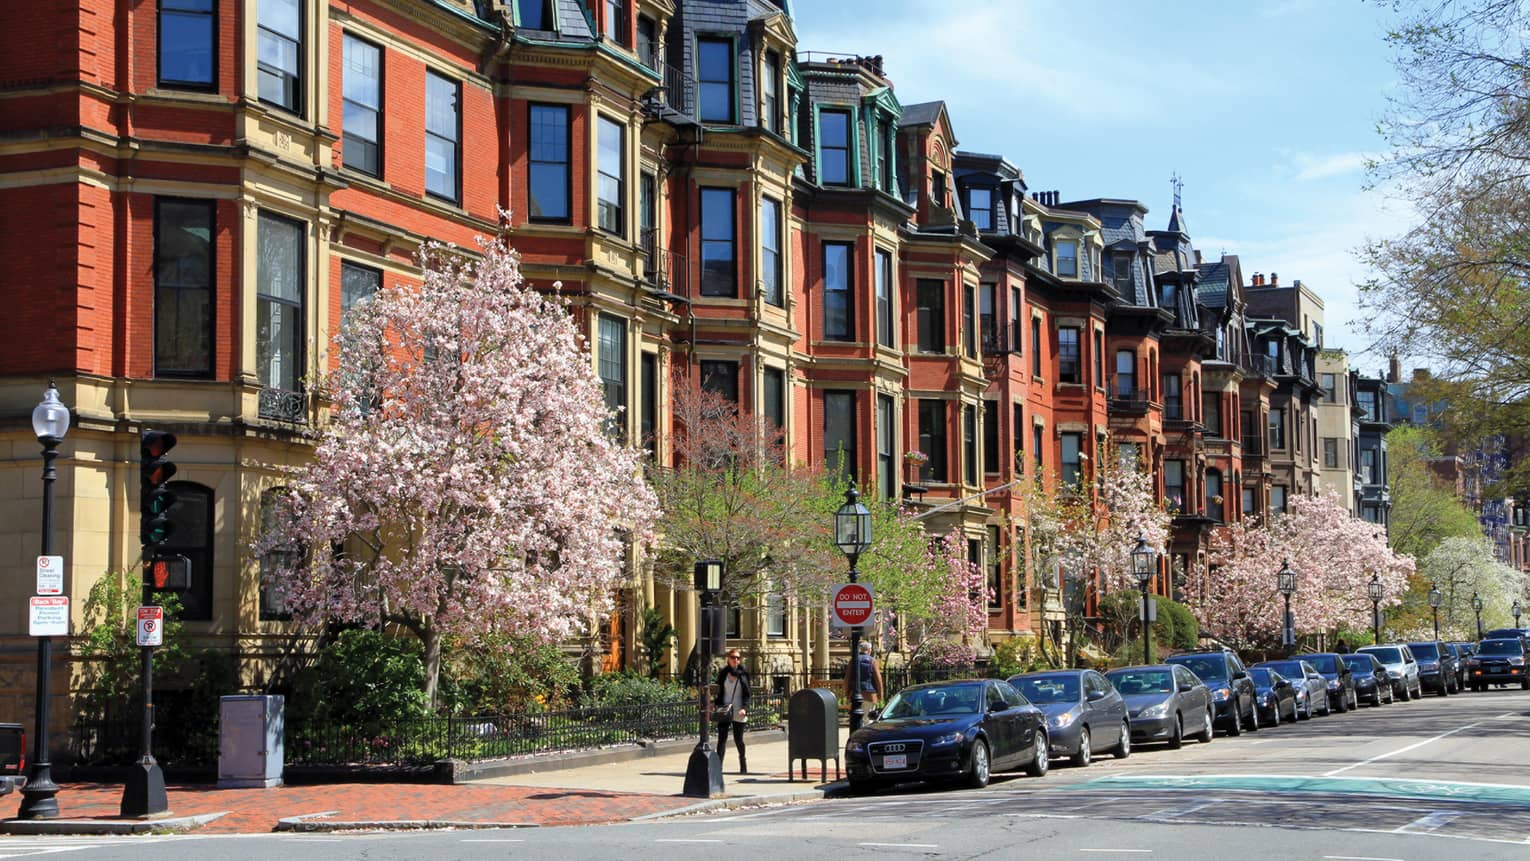 Cars are parked along a quaint residential street in boston